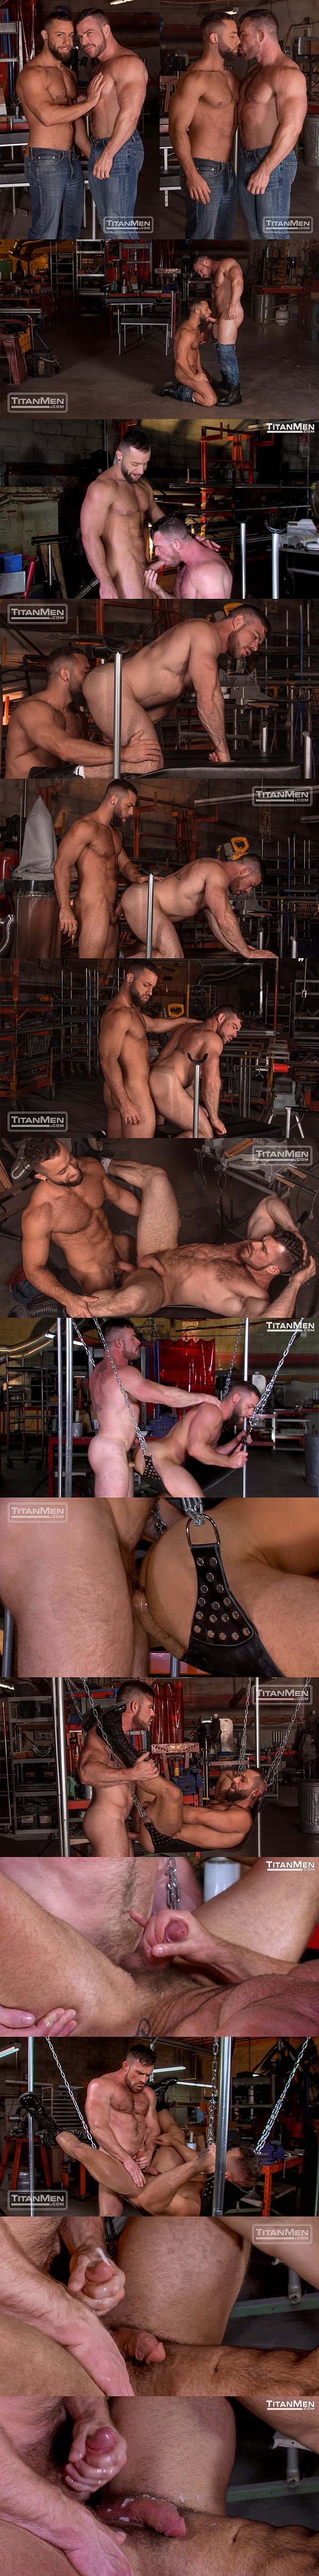 Muscle hunk Liam Knox flip-fucks Eddy CeeTee in the sling factory at Titanmen 02